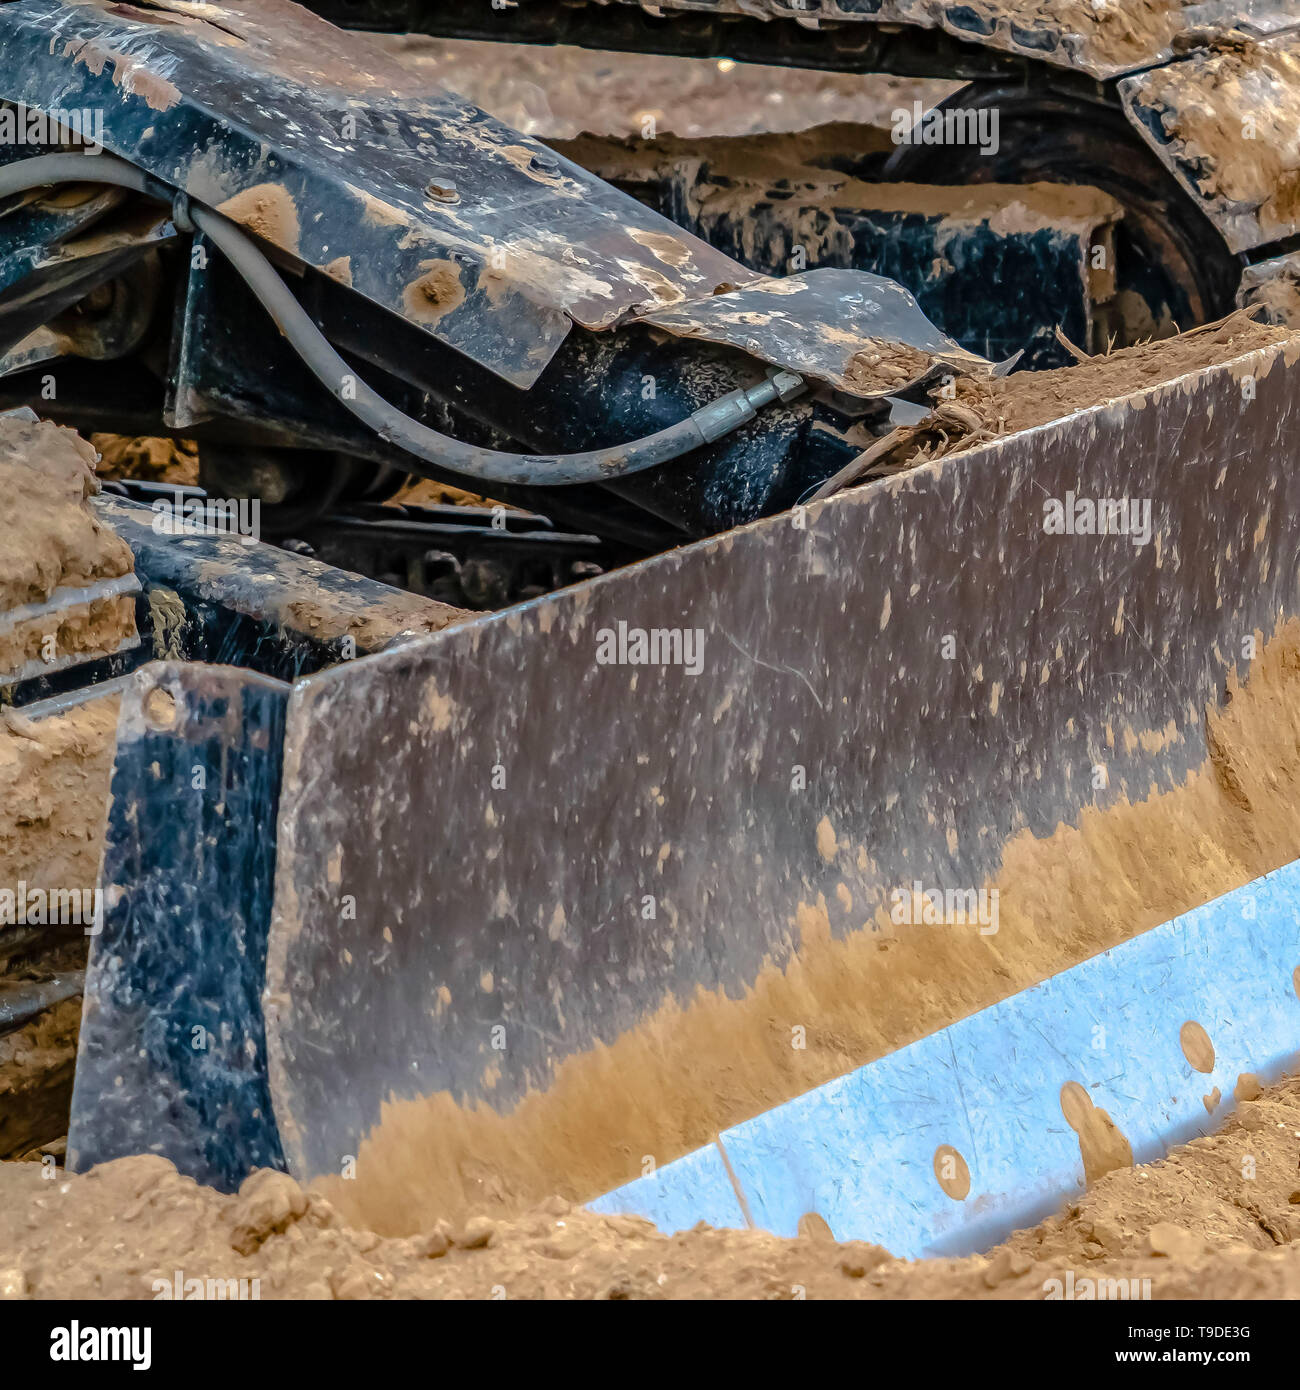 Square Close up of a metal grader blade against the ground with brown soil - Stock Image